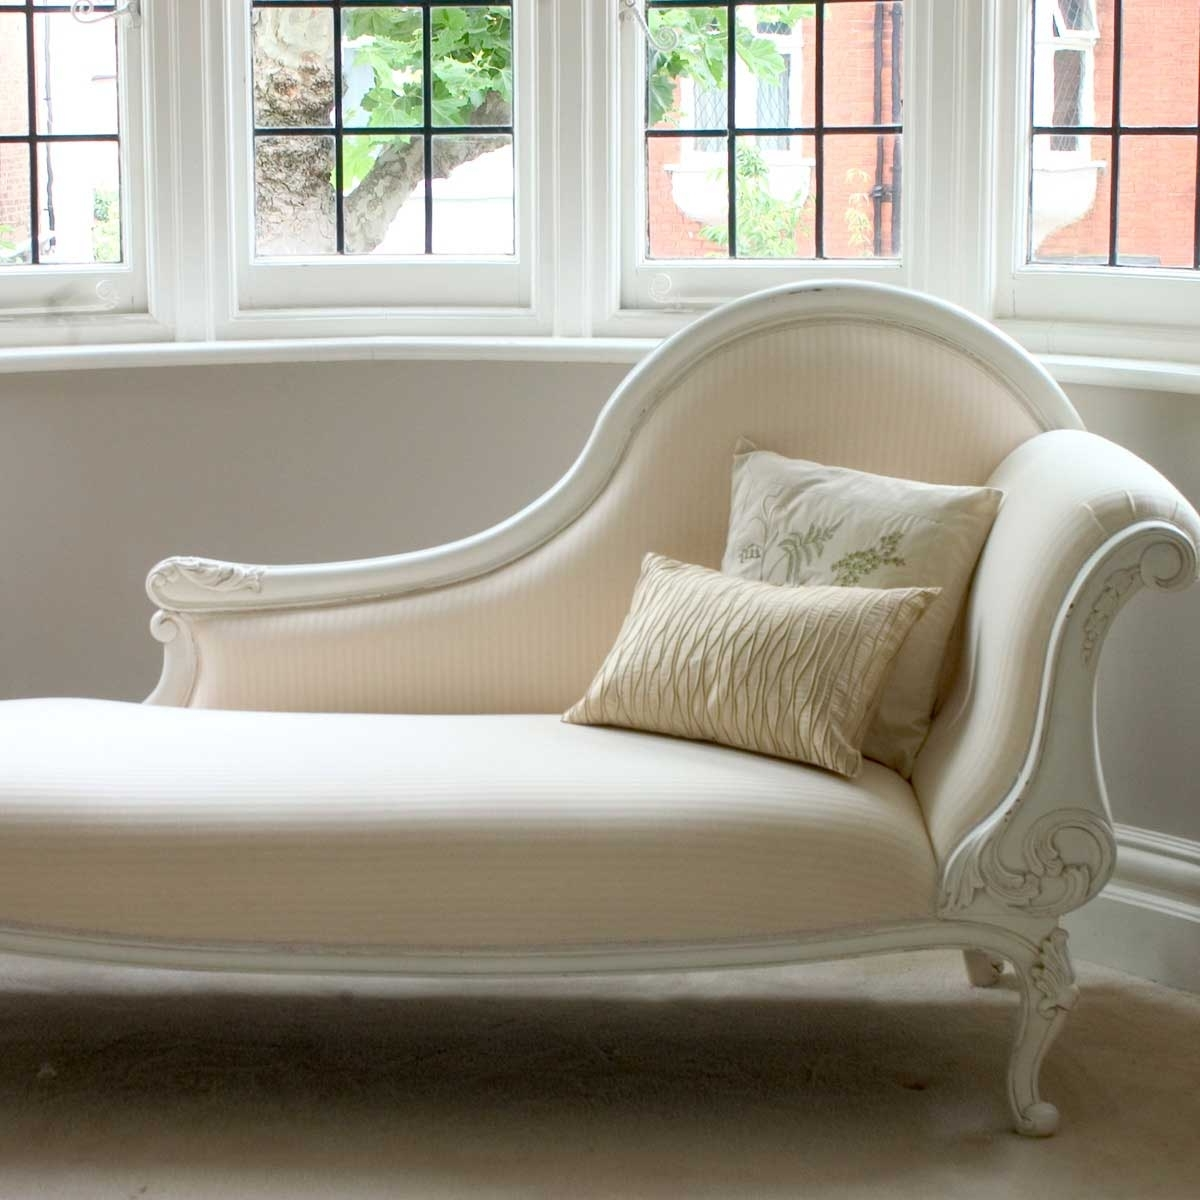 Chaise For White Chaise Lounge Chairs (View 1 of 15)